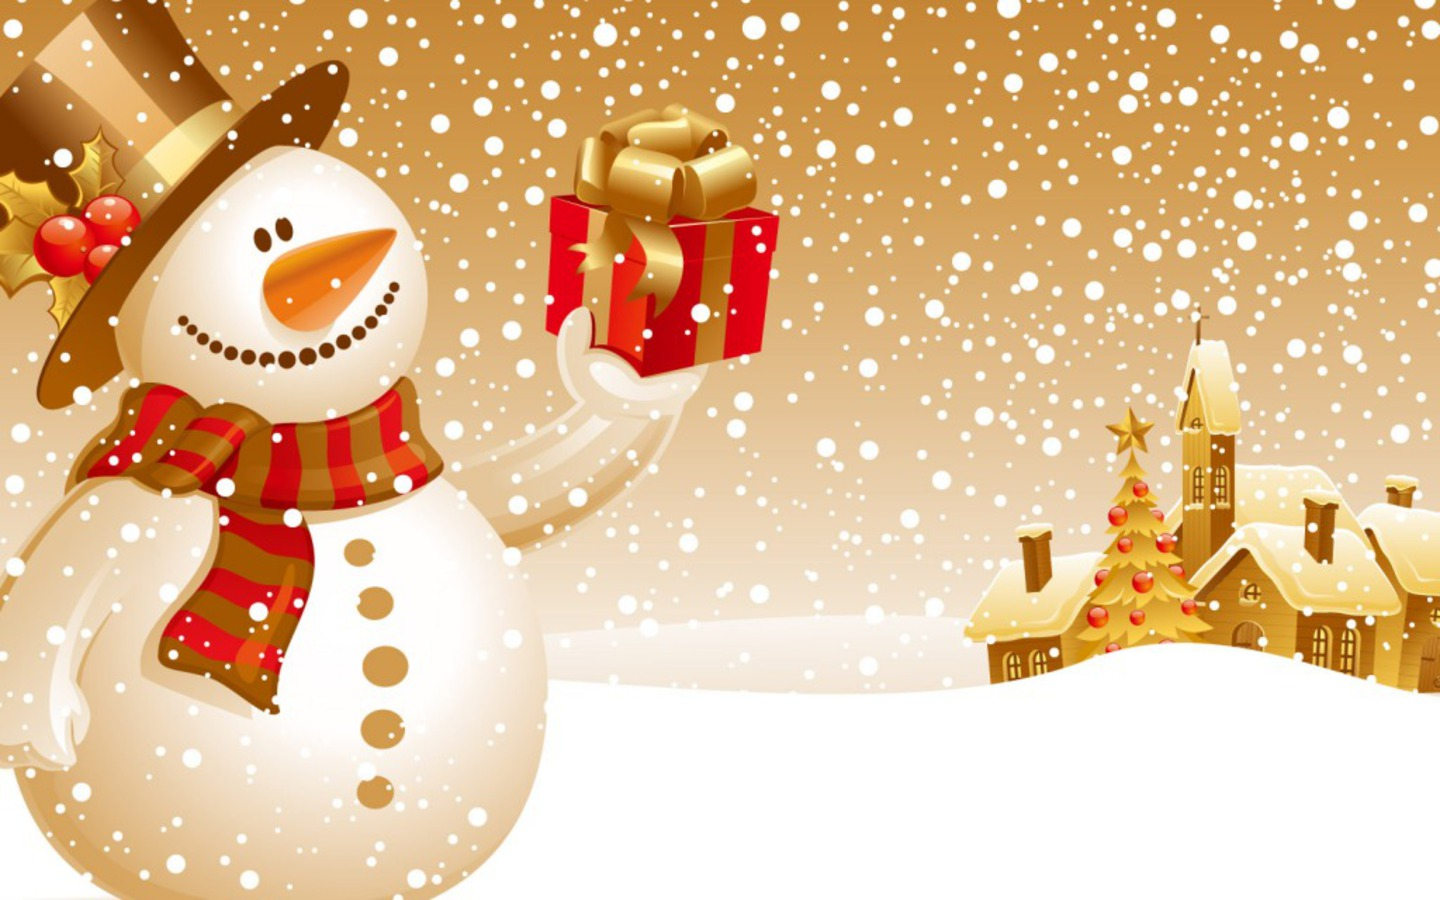 Cute Christmas Snowman wallpaper Wallpapers   HD Wallpapers 87978 1440x900